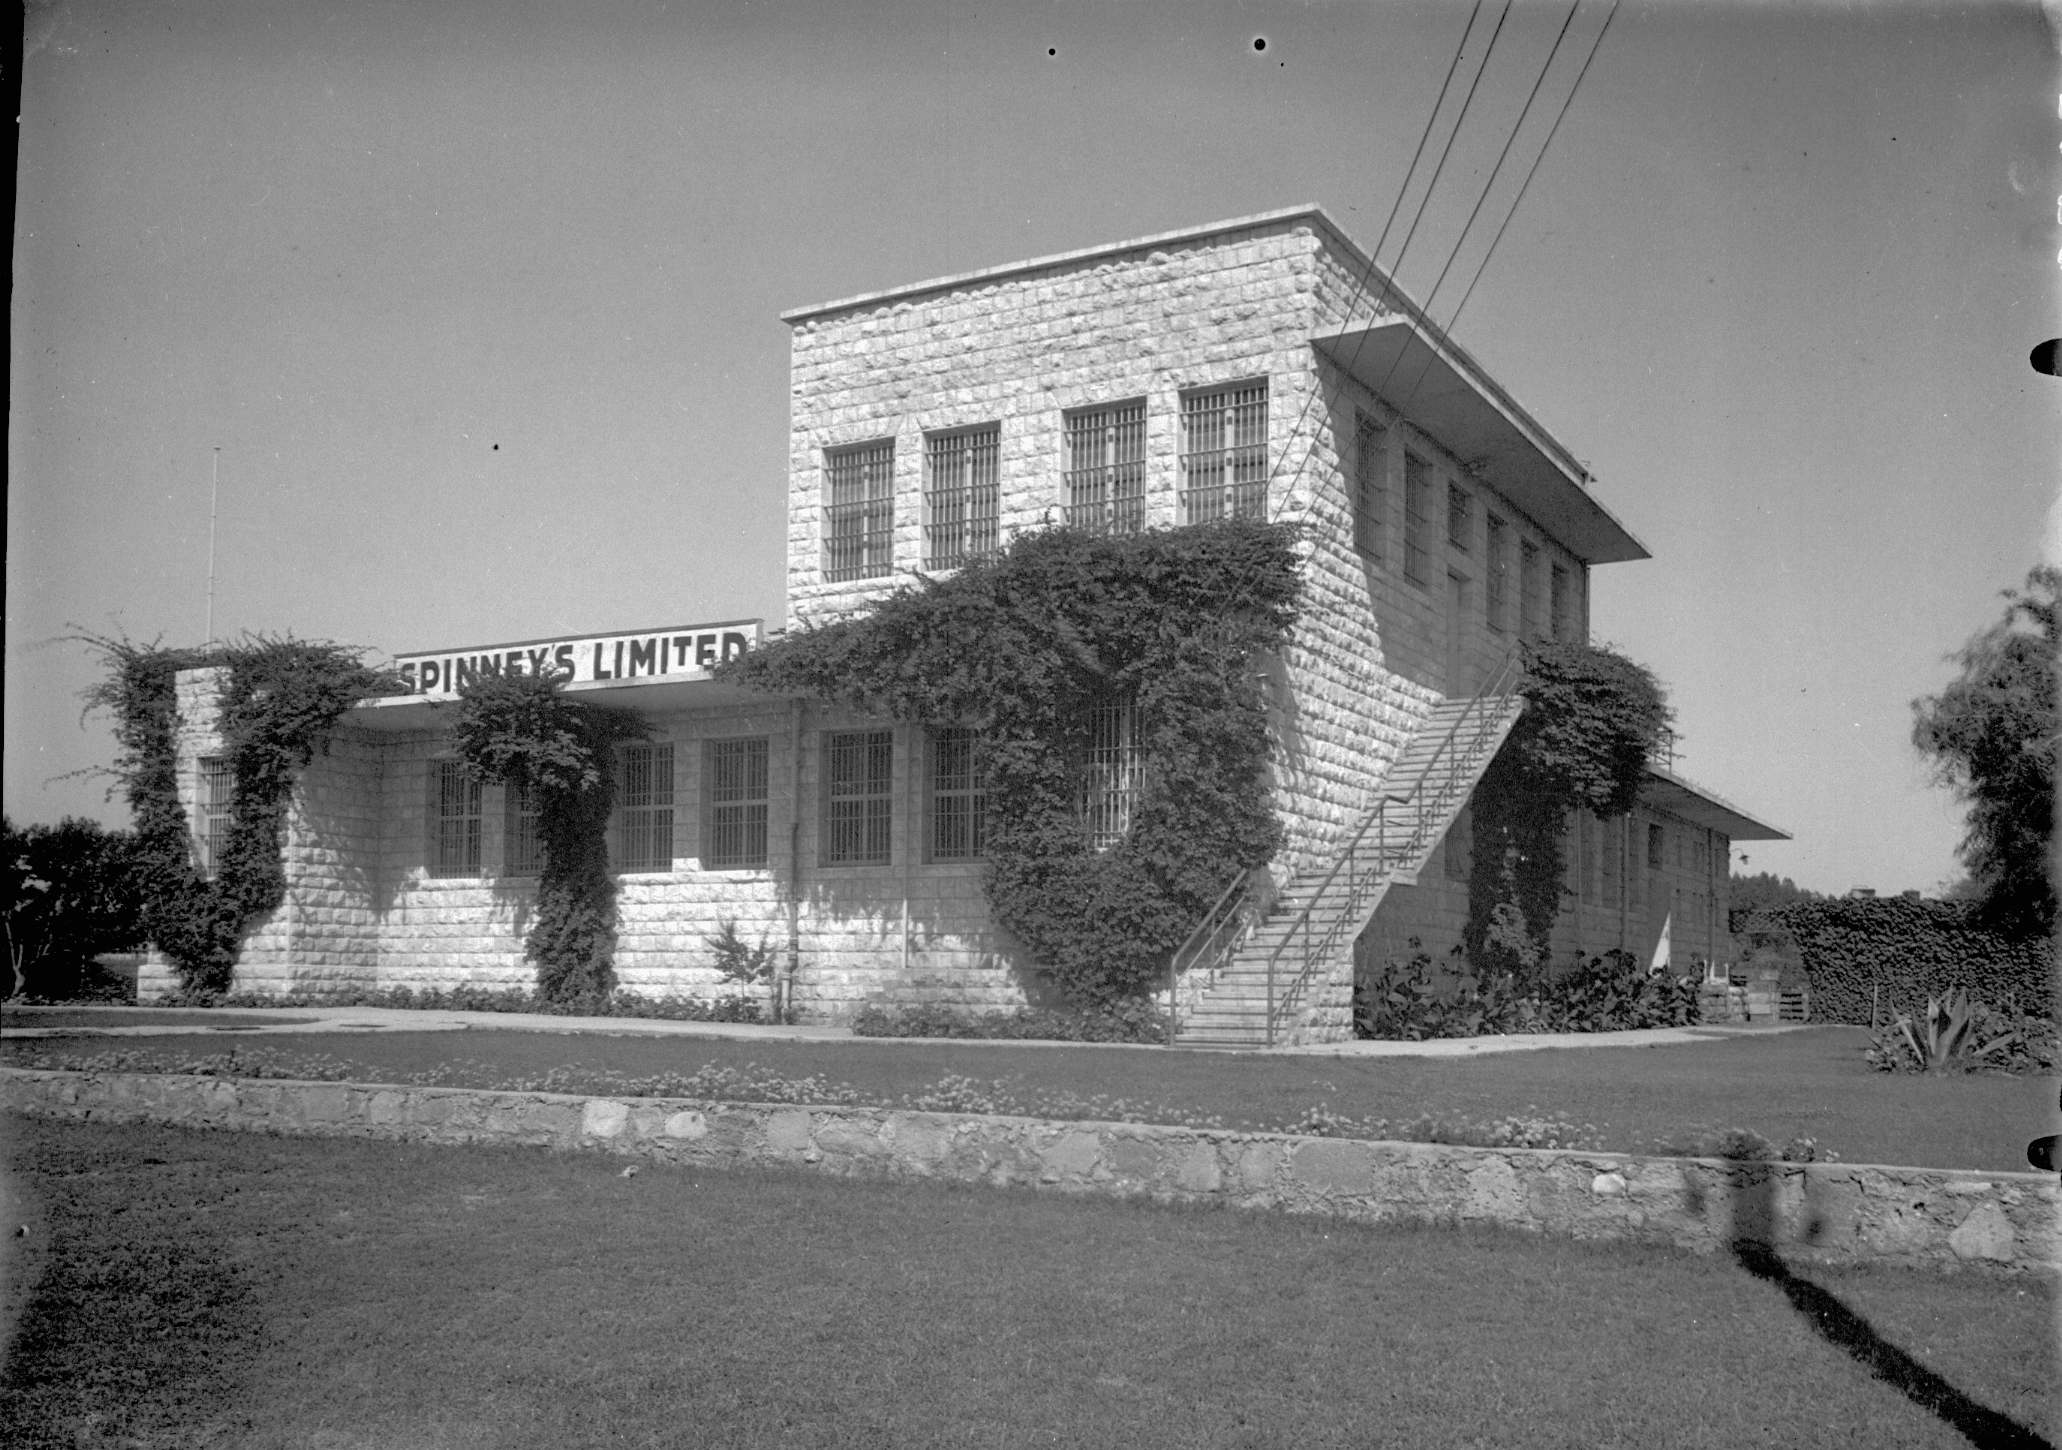 File:Spinney's Mineral Water Factory (מפעל לייצור מים